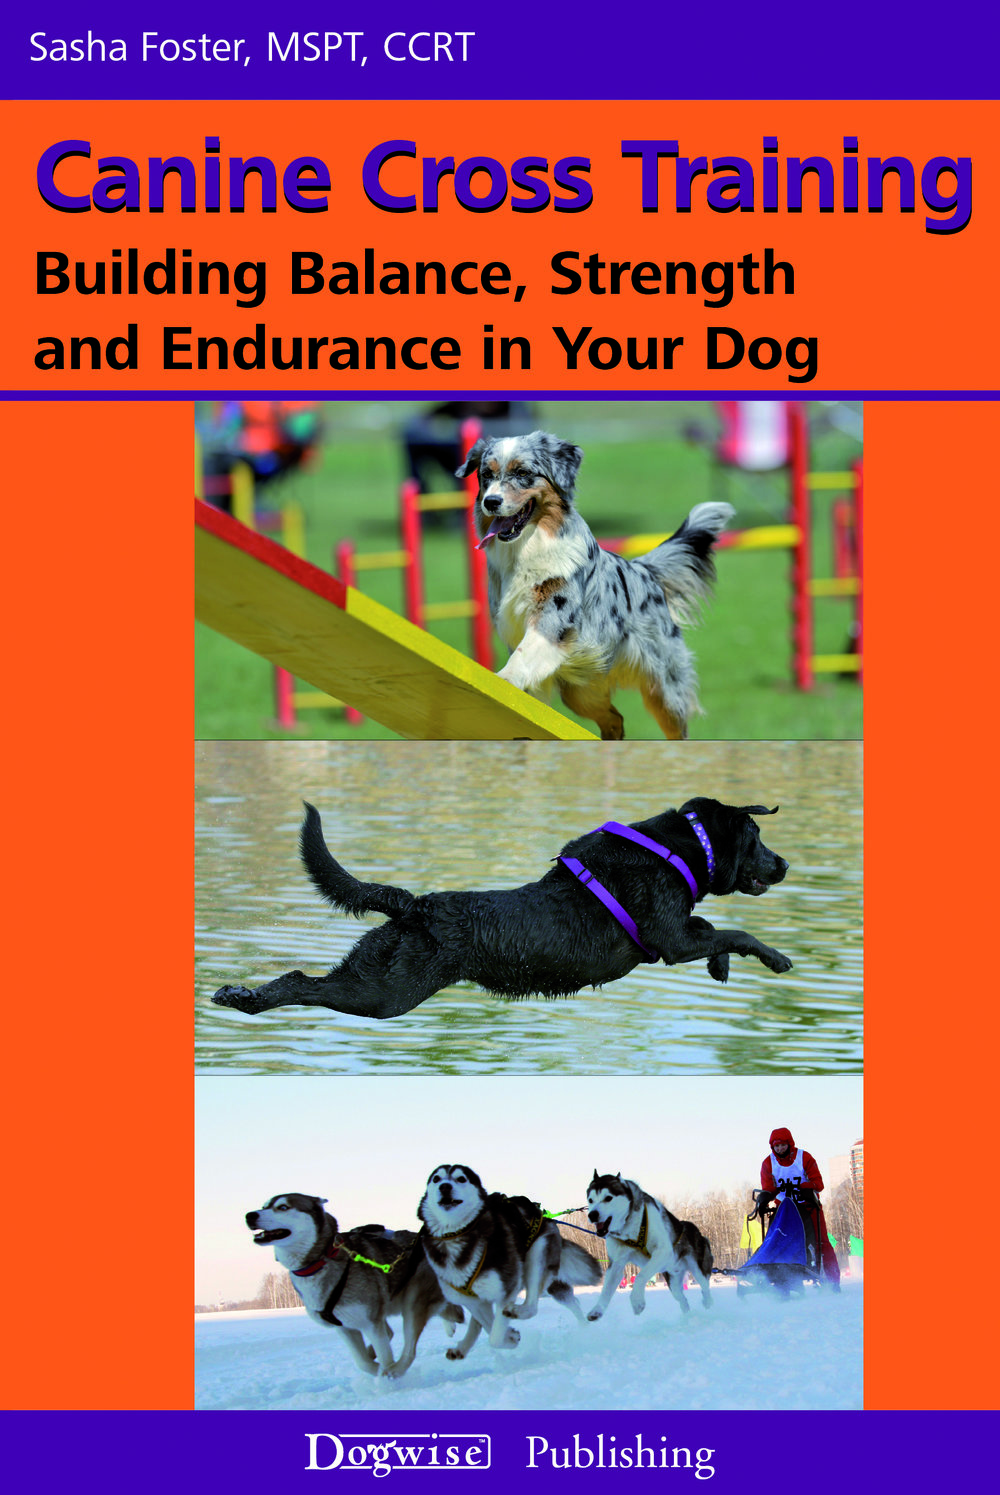 Canine Cross Training cover.jpg